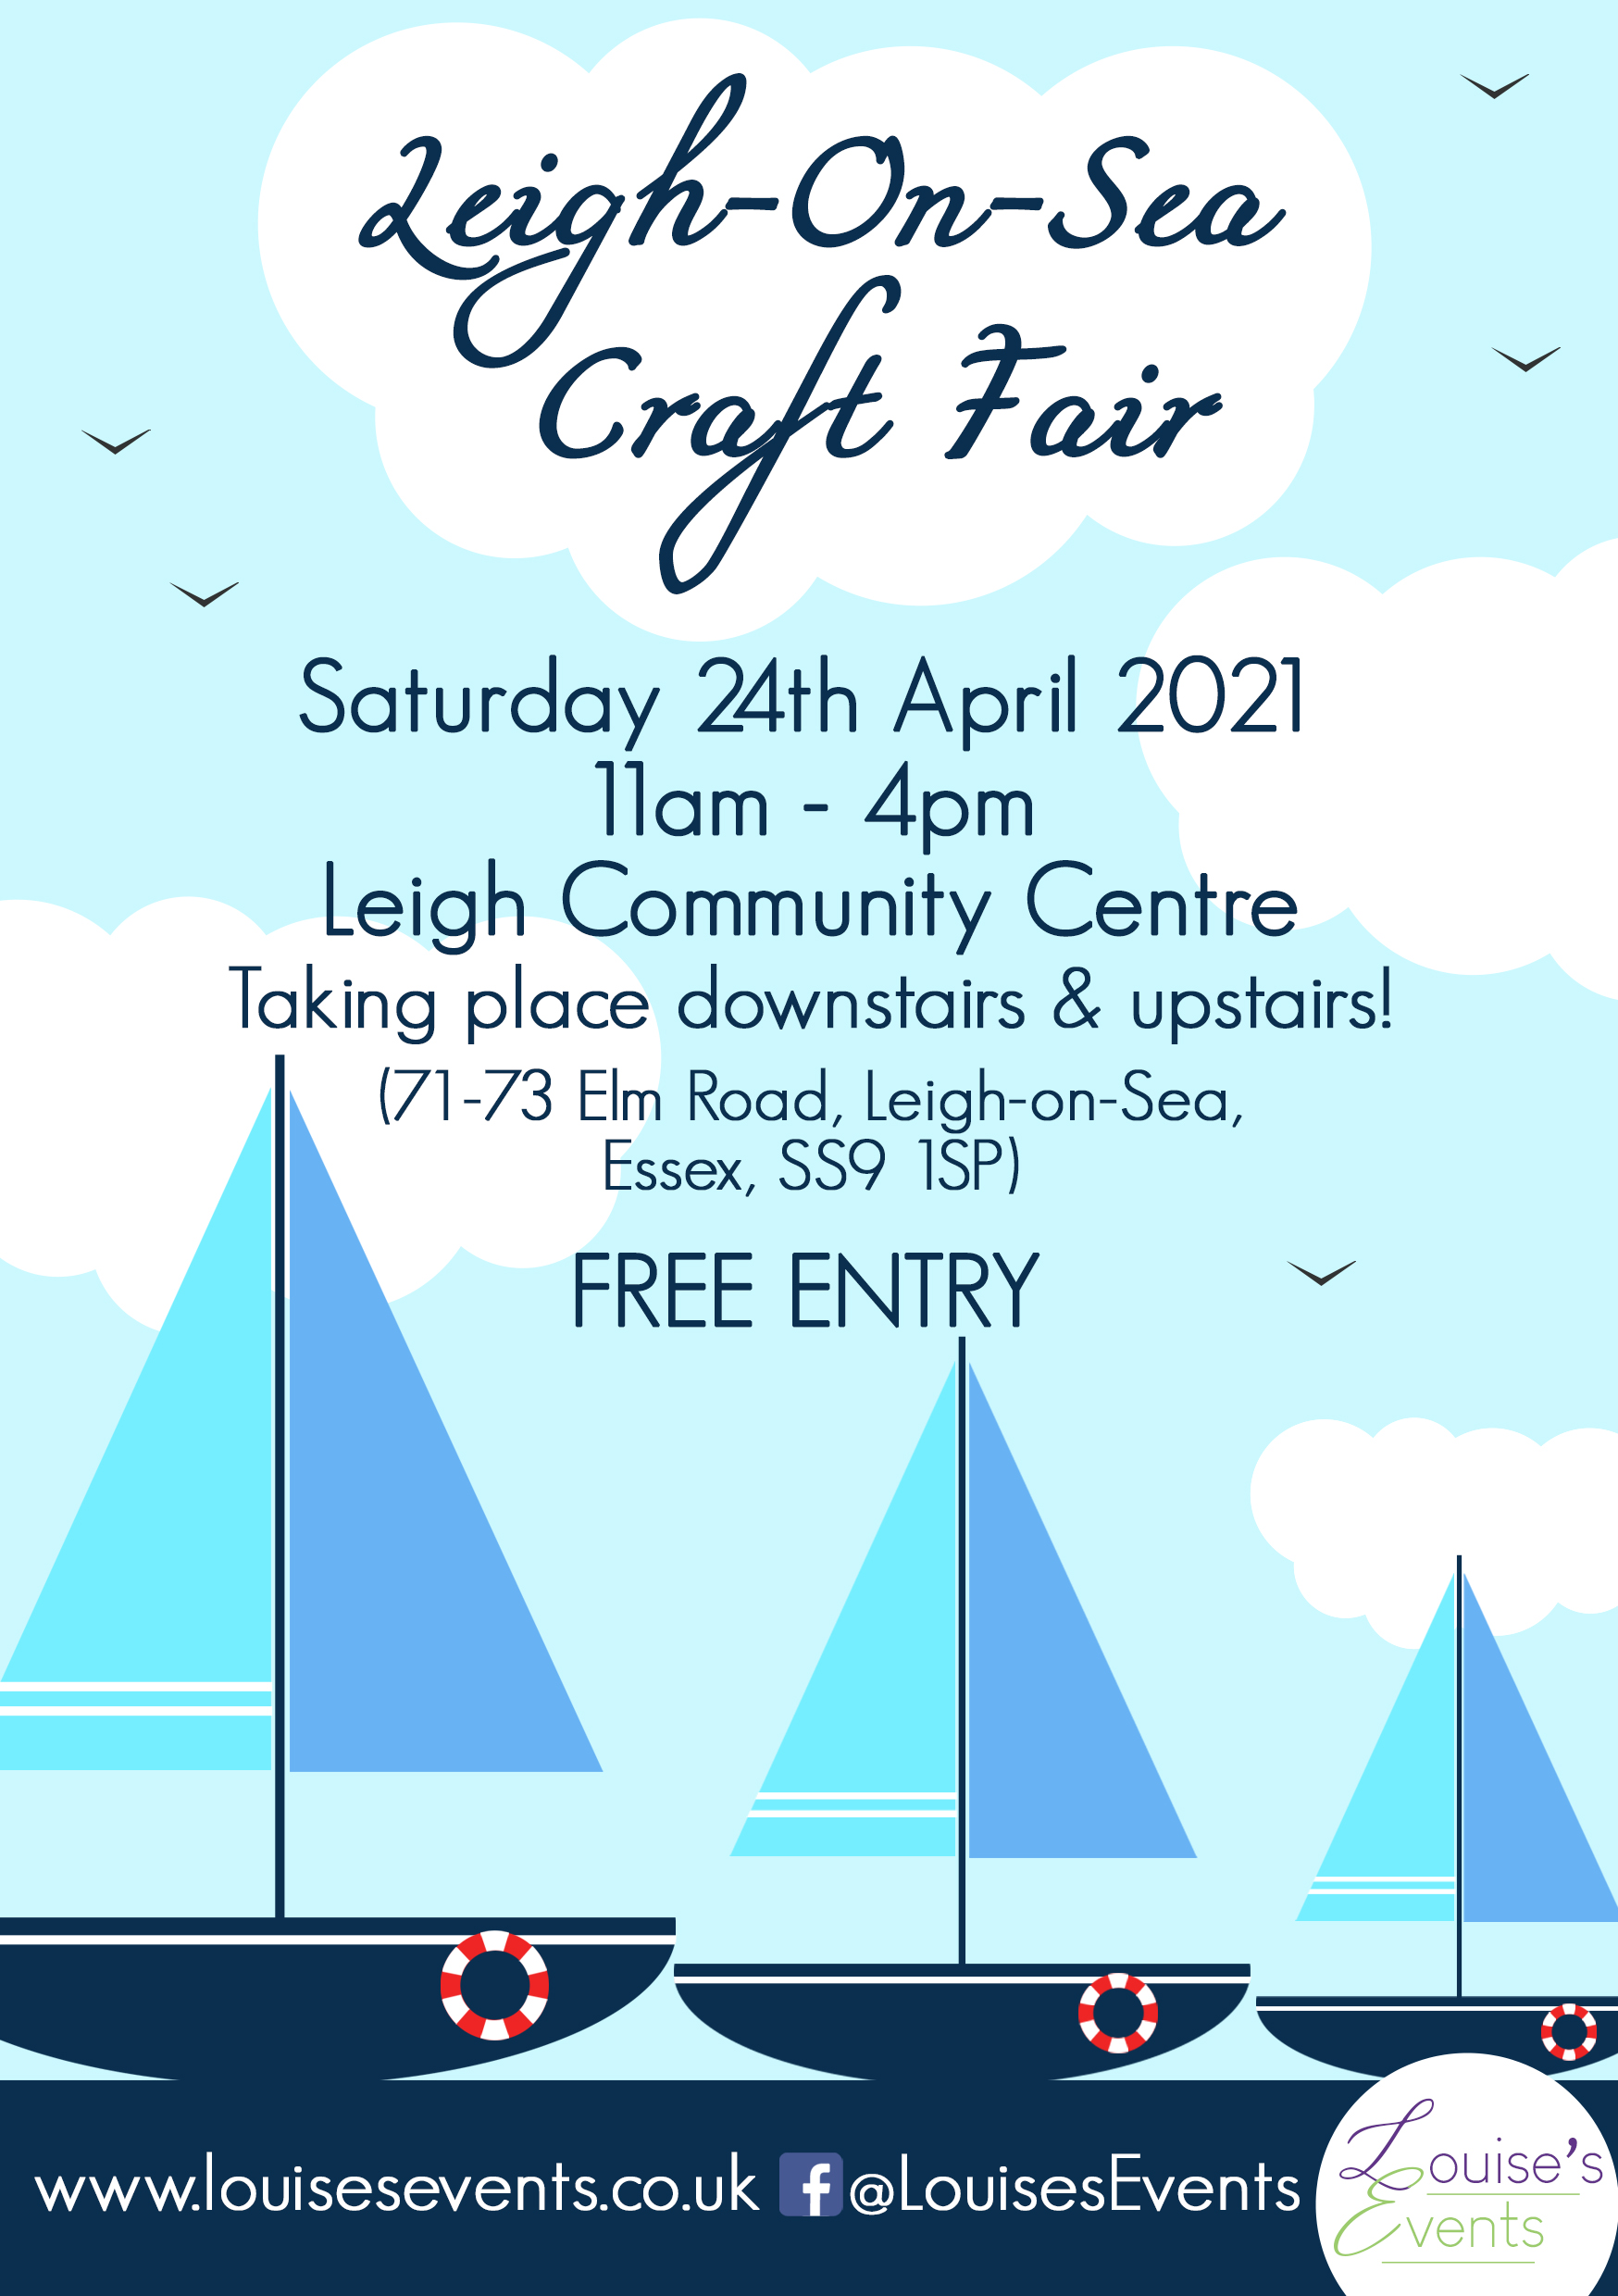 Leigh-on-Sea Craft Fair by Louise's Events